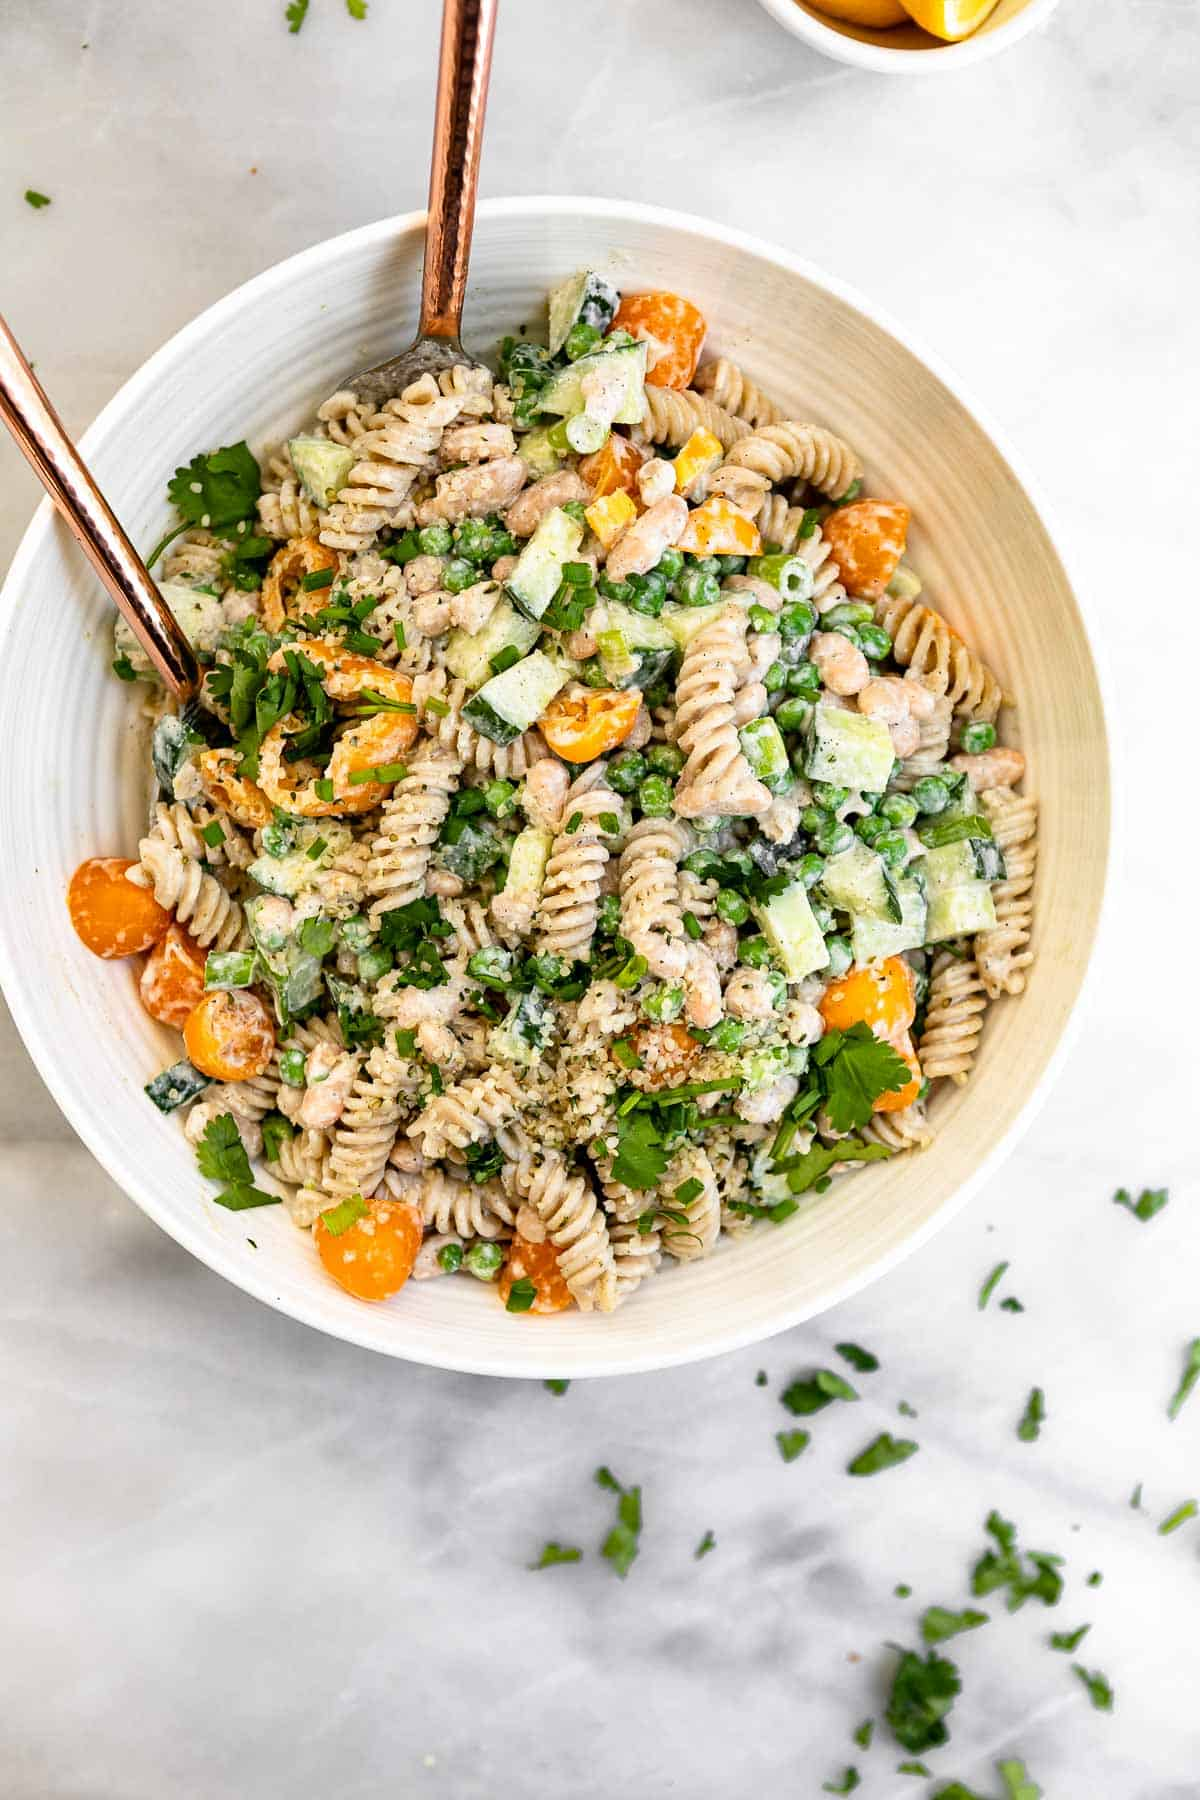 large white bowl with the pasta salad with fresh herbs